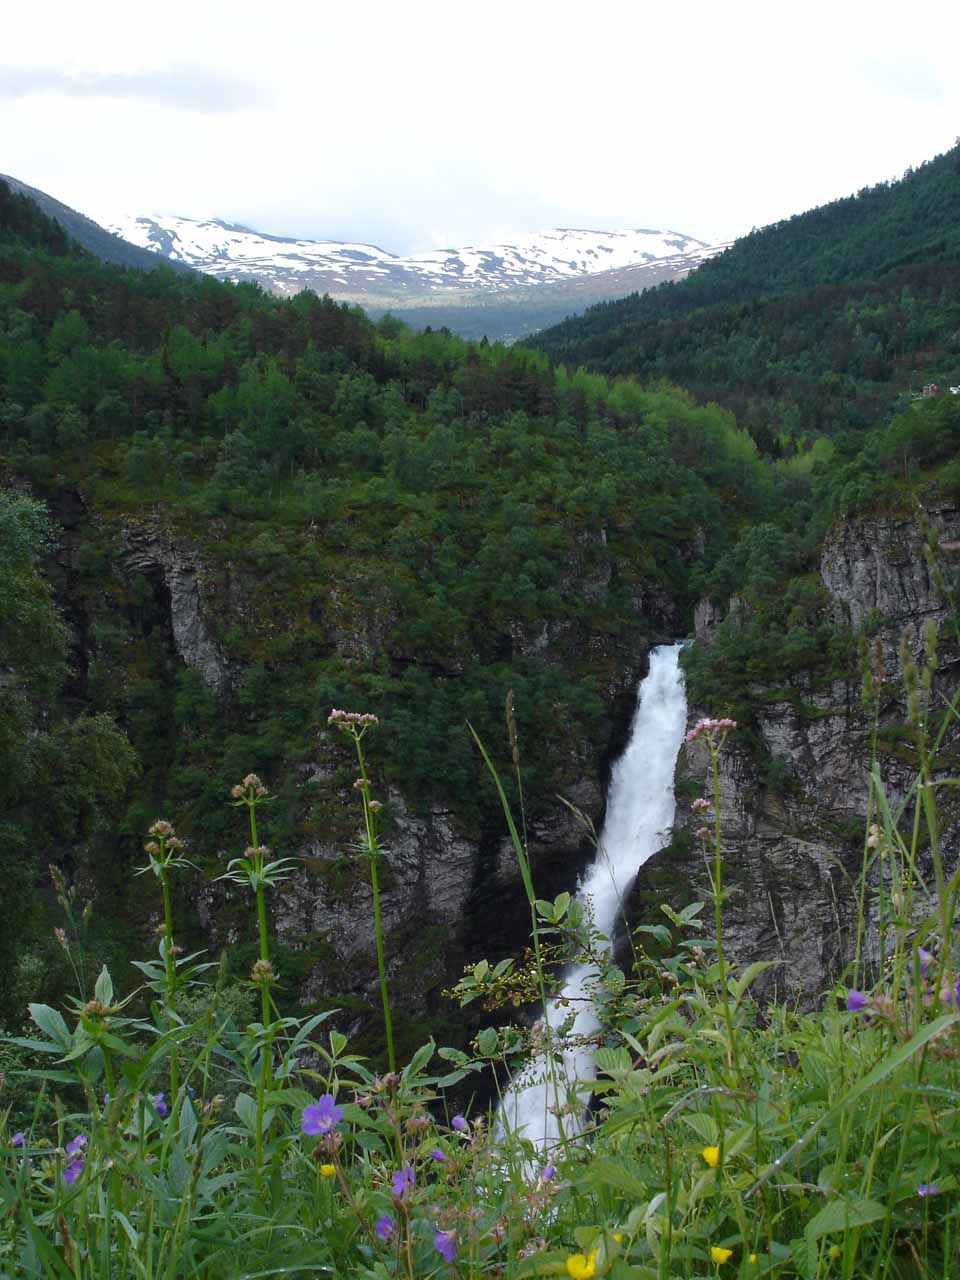 As we started to descend Stalheimskleiva, we started to get partial views of Stalheimsfossen and the mountains beyond